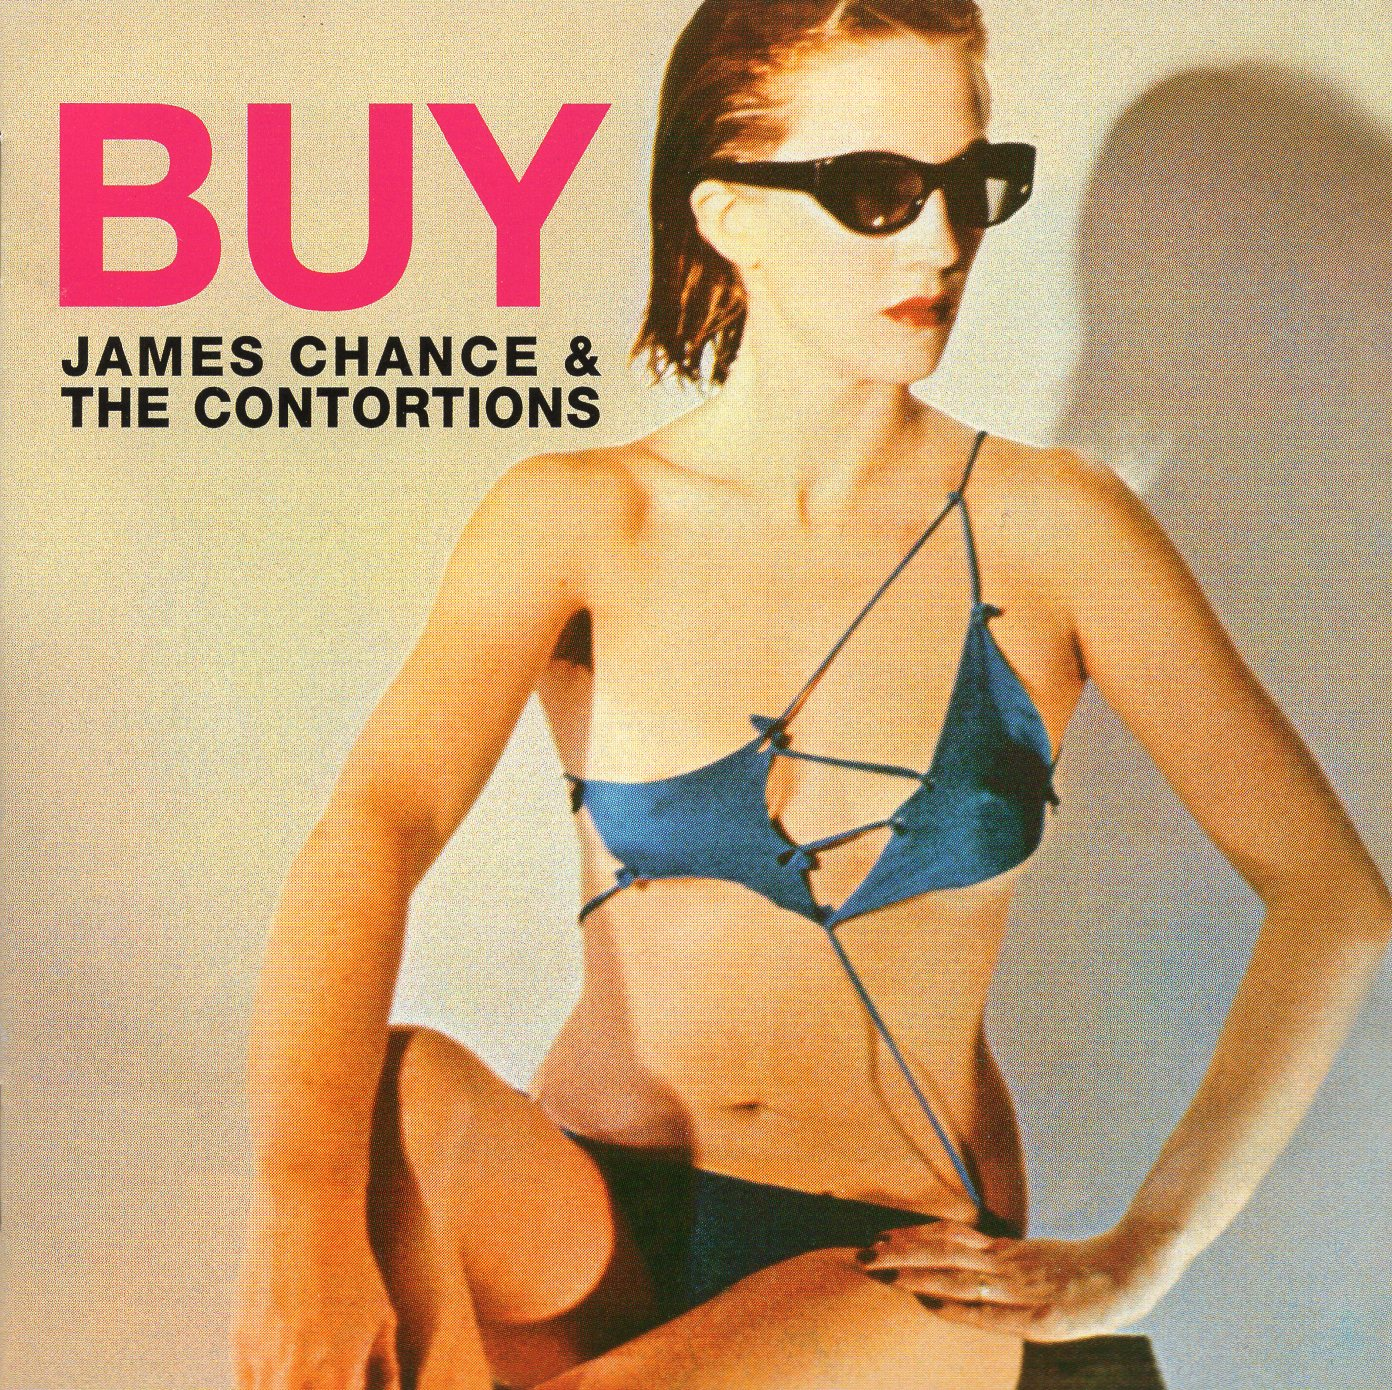 """Buy"" James Chance, The Contortions"